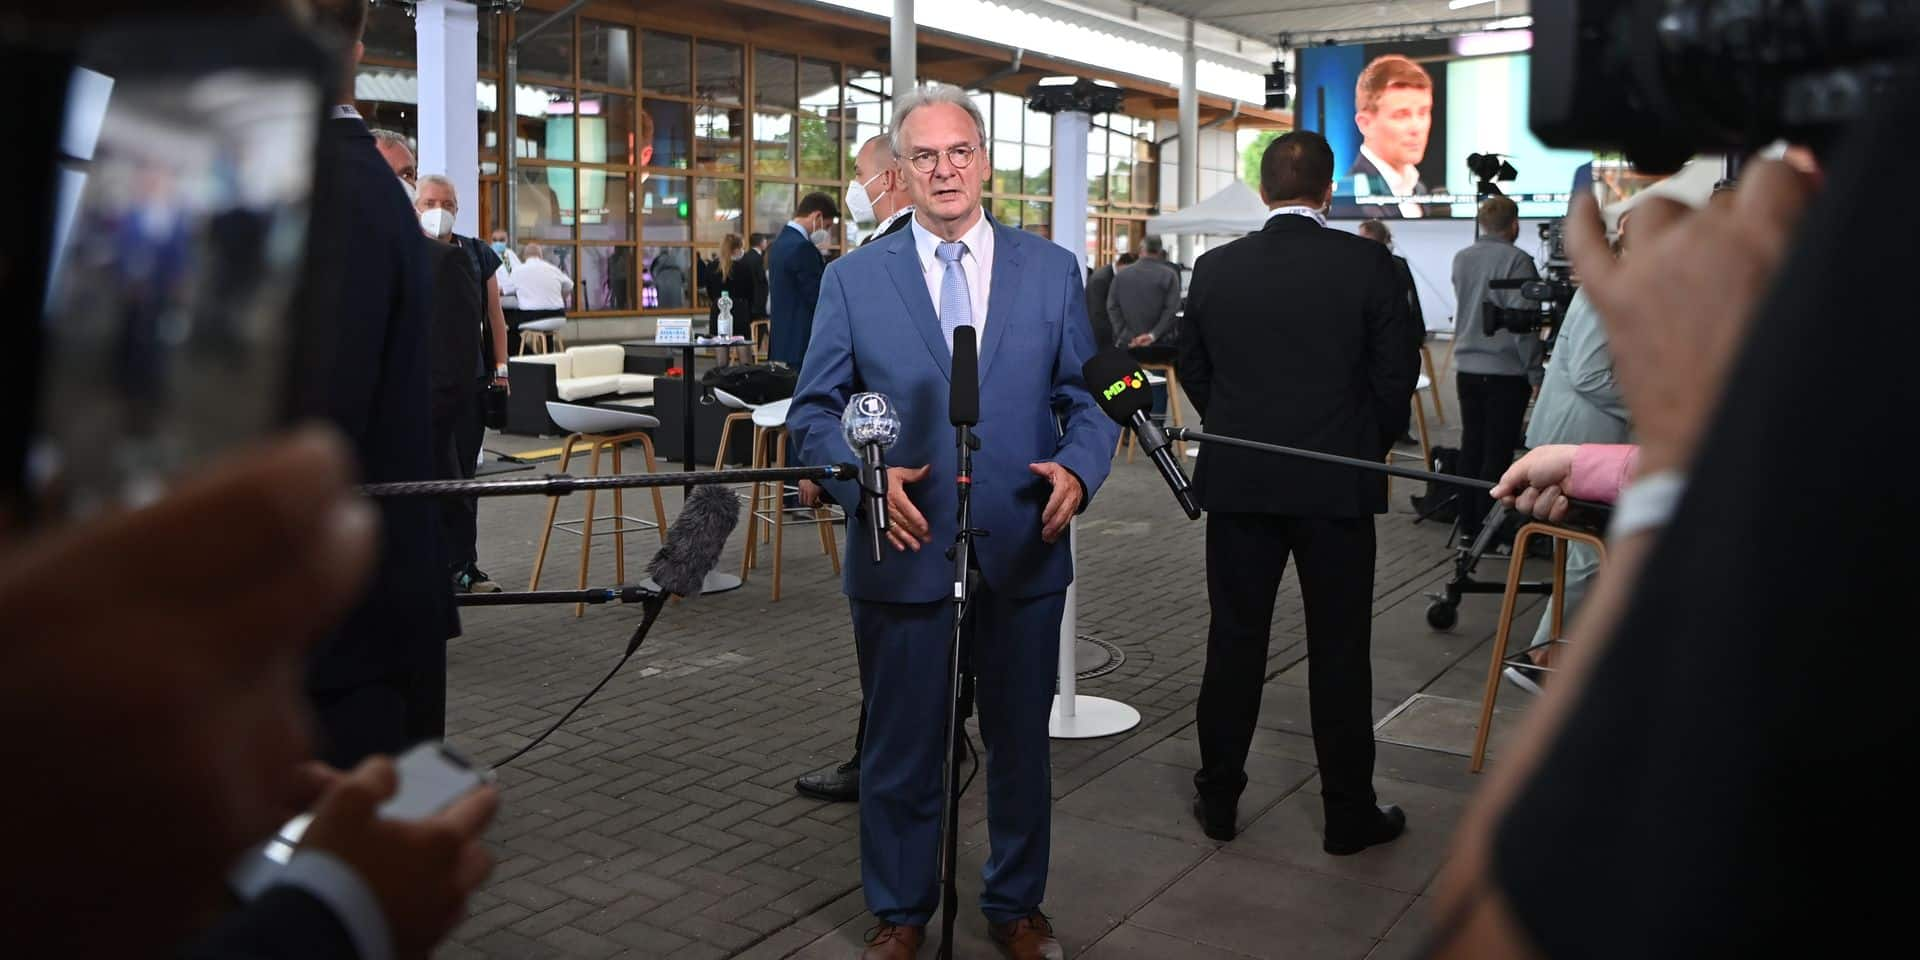 Saxony-Anhalt state election in Germany